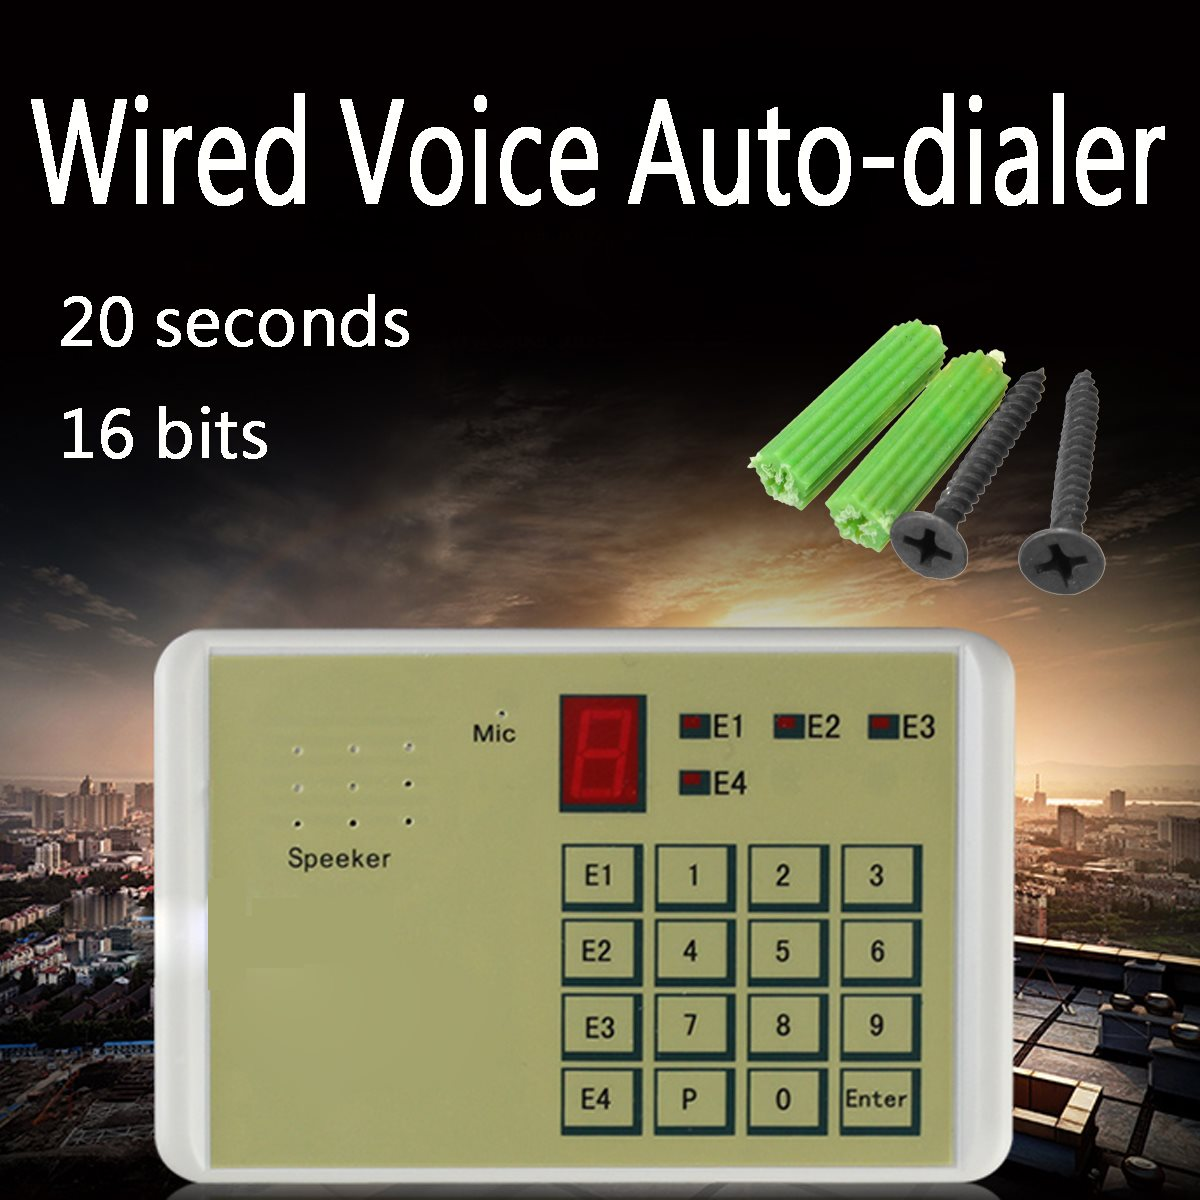 imágenes para Telephone Voice Dialing Automatic Alarm Dialer Alarm Host Dialer Wired Voice Auto-dialer Burglar Security House System